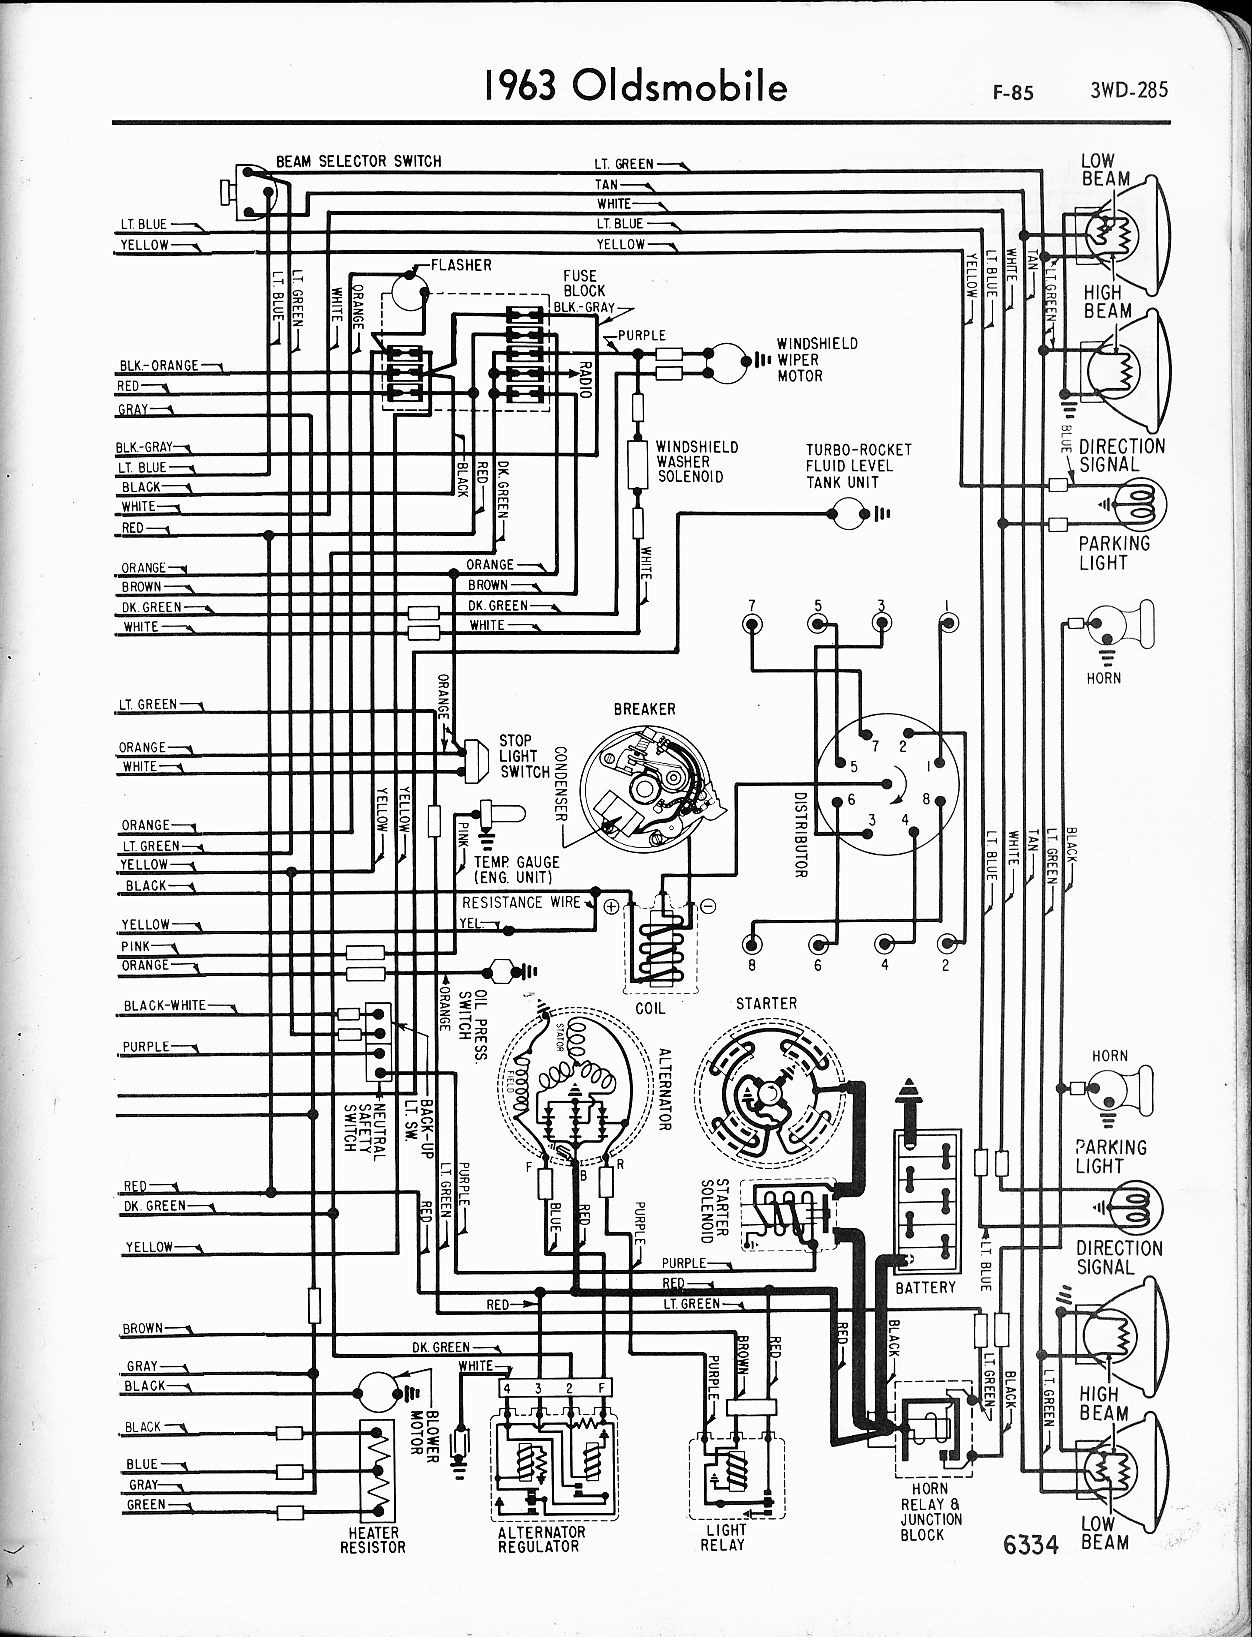 2001 pontiac grand am se engine diagram wiring diagram besides 1996 rh  detoxicrecenze com 2001 pontiac grand am 2.4 engine diagram 2001 pontiac  grand am gt ...